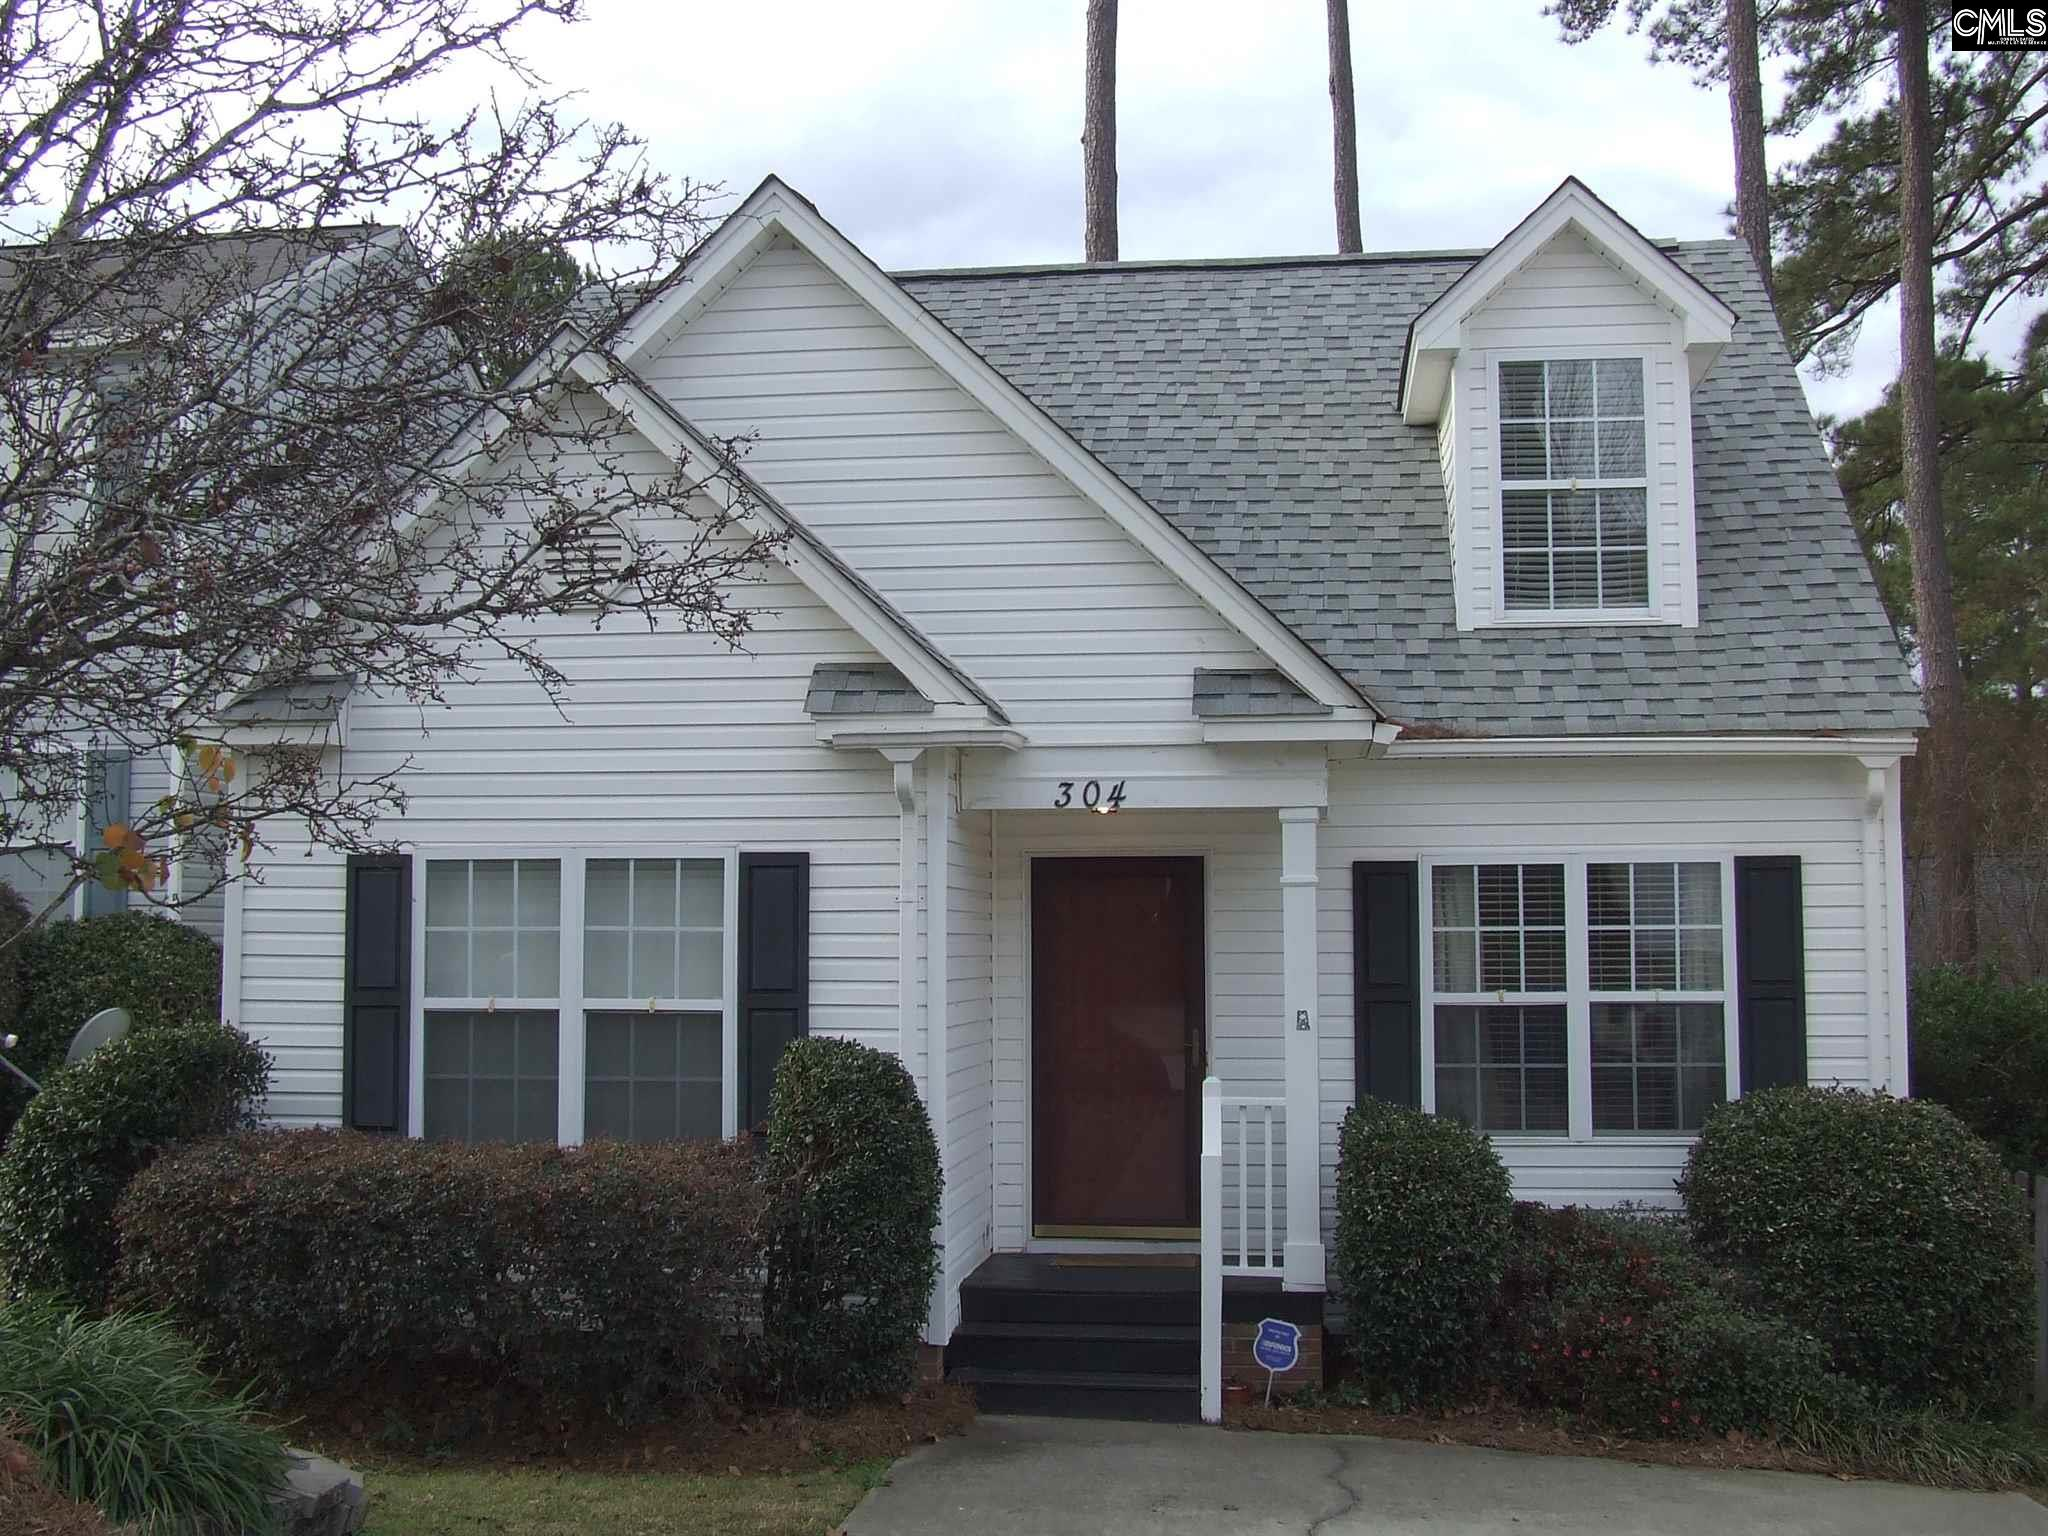 304 Village Walk Columbia, SC 29209